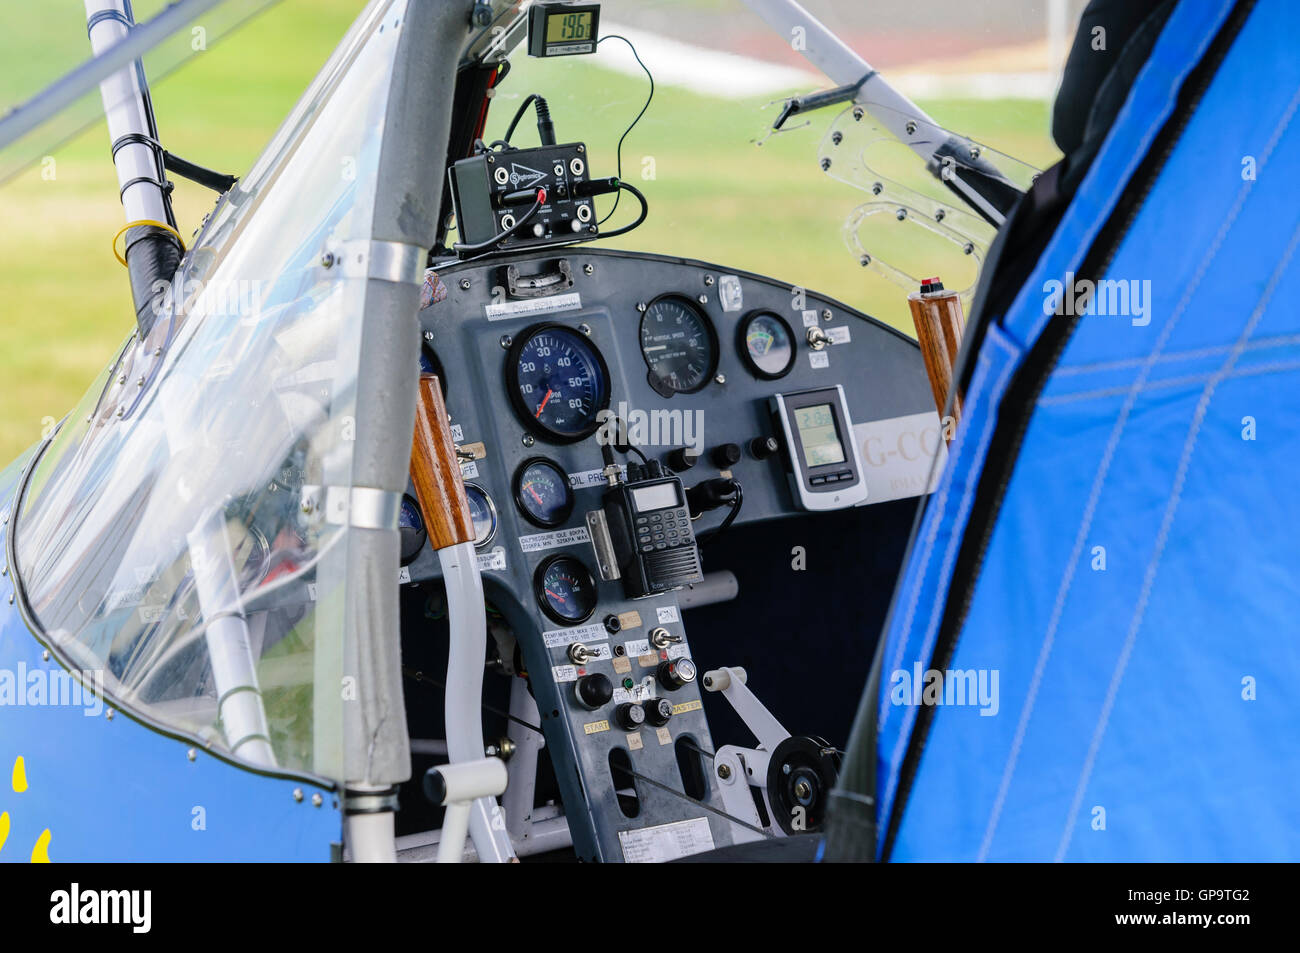 Cockpit of a Thruster T600N Sprint microlight aircraft Stock